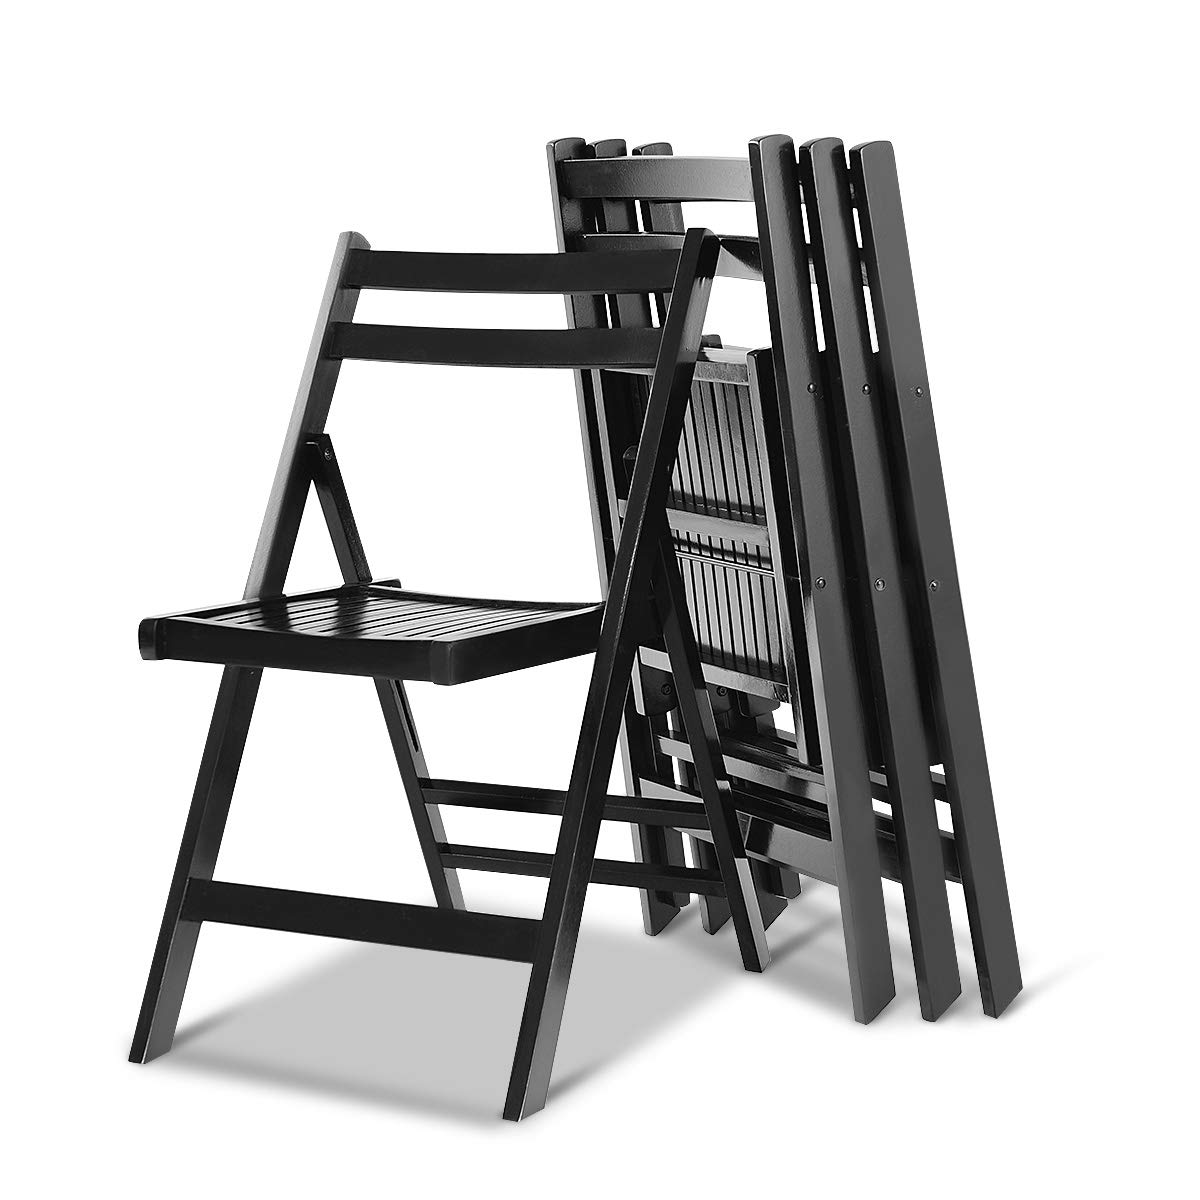 Giantex 4 Pcs Folding Chairs Foldable Seat Ergonomic Backrest for Wedding Patio Garden Home Furniture Solid Wood Portable Chairs for Living Room or Camping (Black)